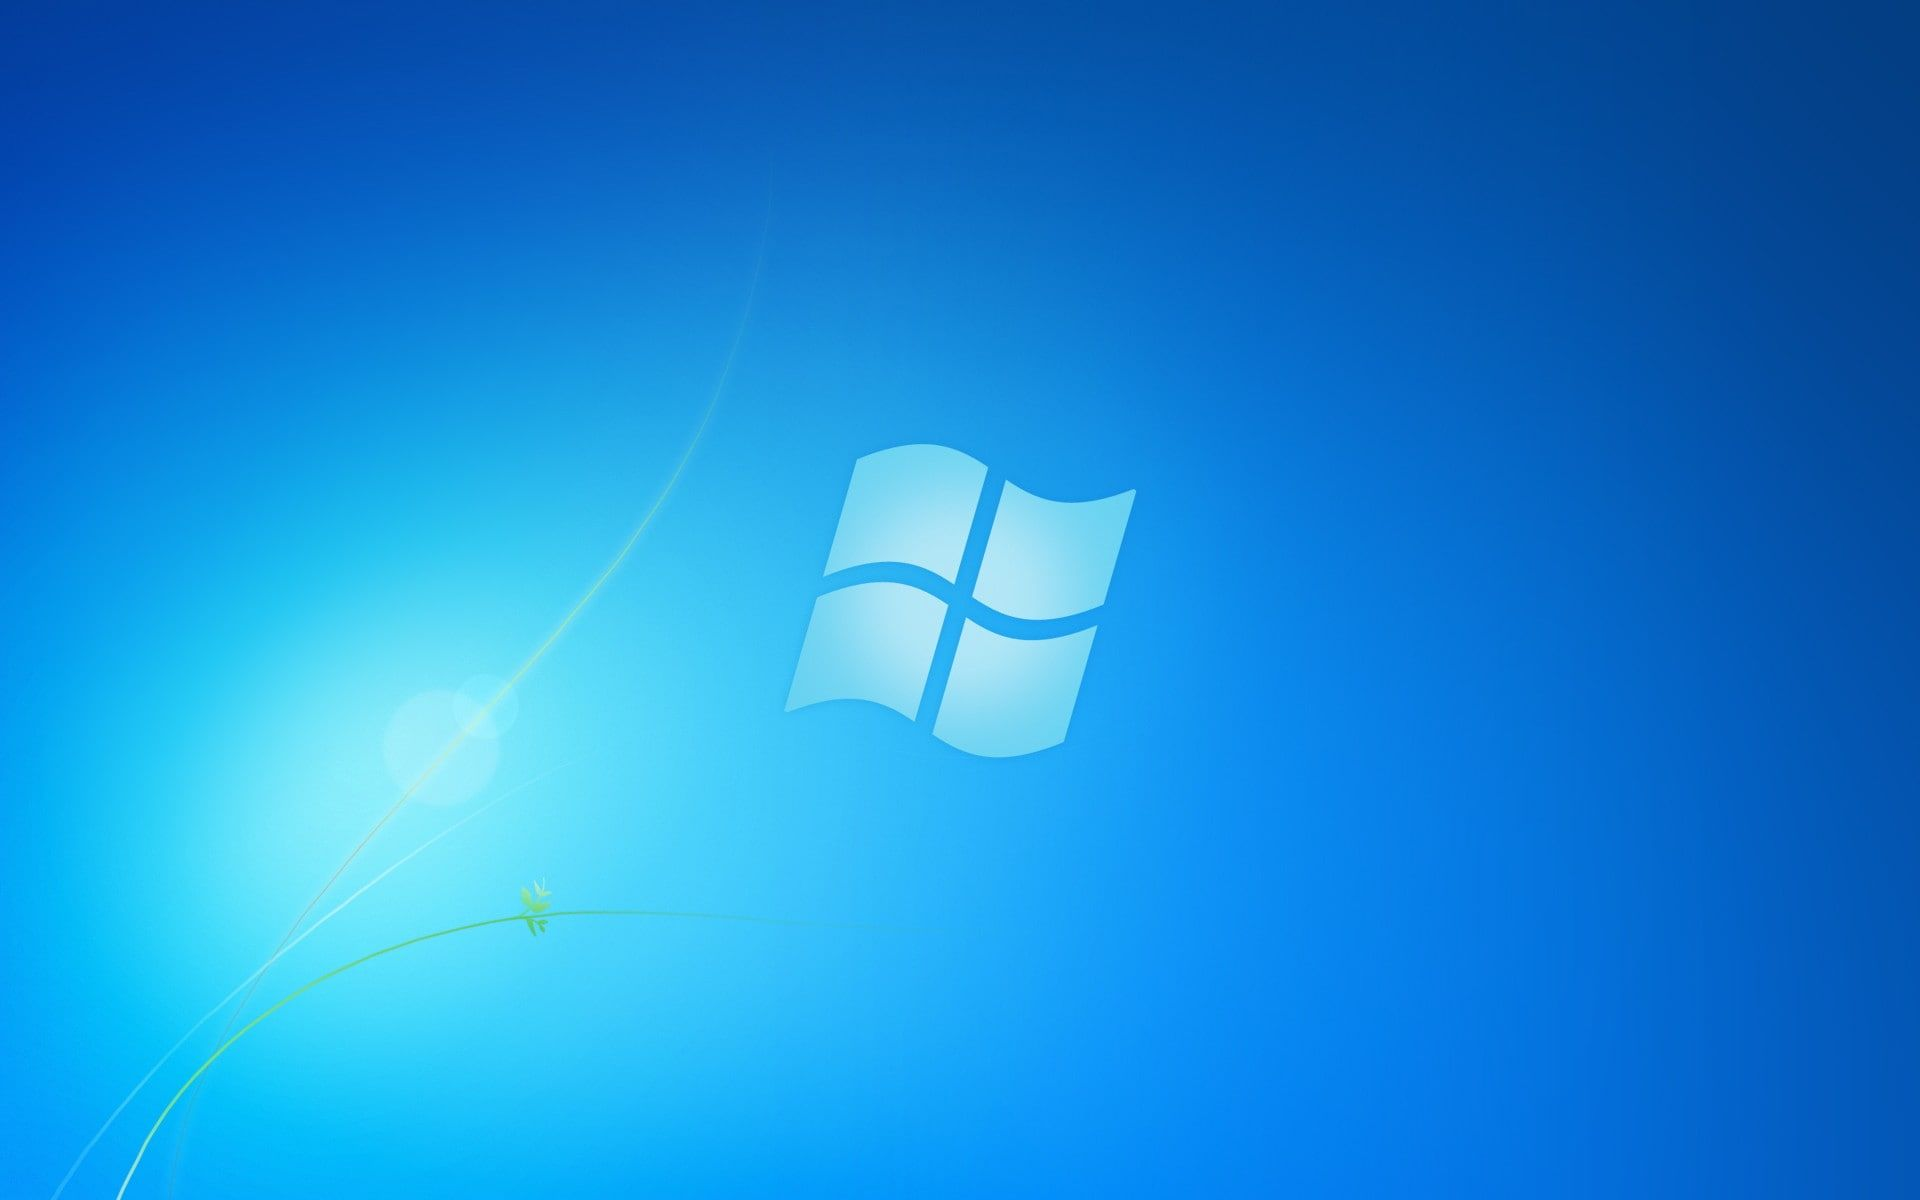 Windows 7 Operating System Windows 7 Operating System 1080p Wallpaper Hdwallpaper Desktop Windows Wallpaper System Wallpaper Wallpaper Windows 10